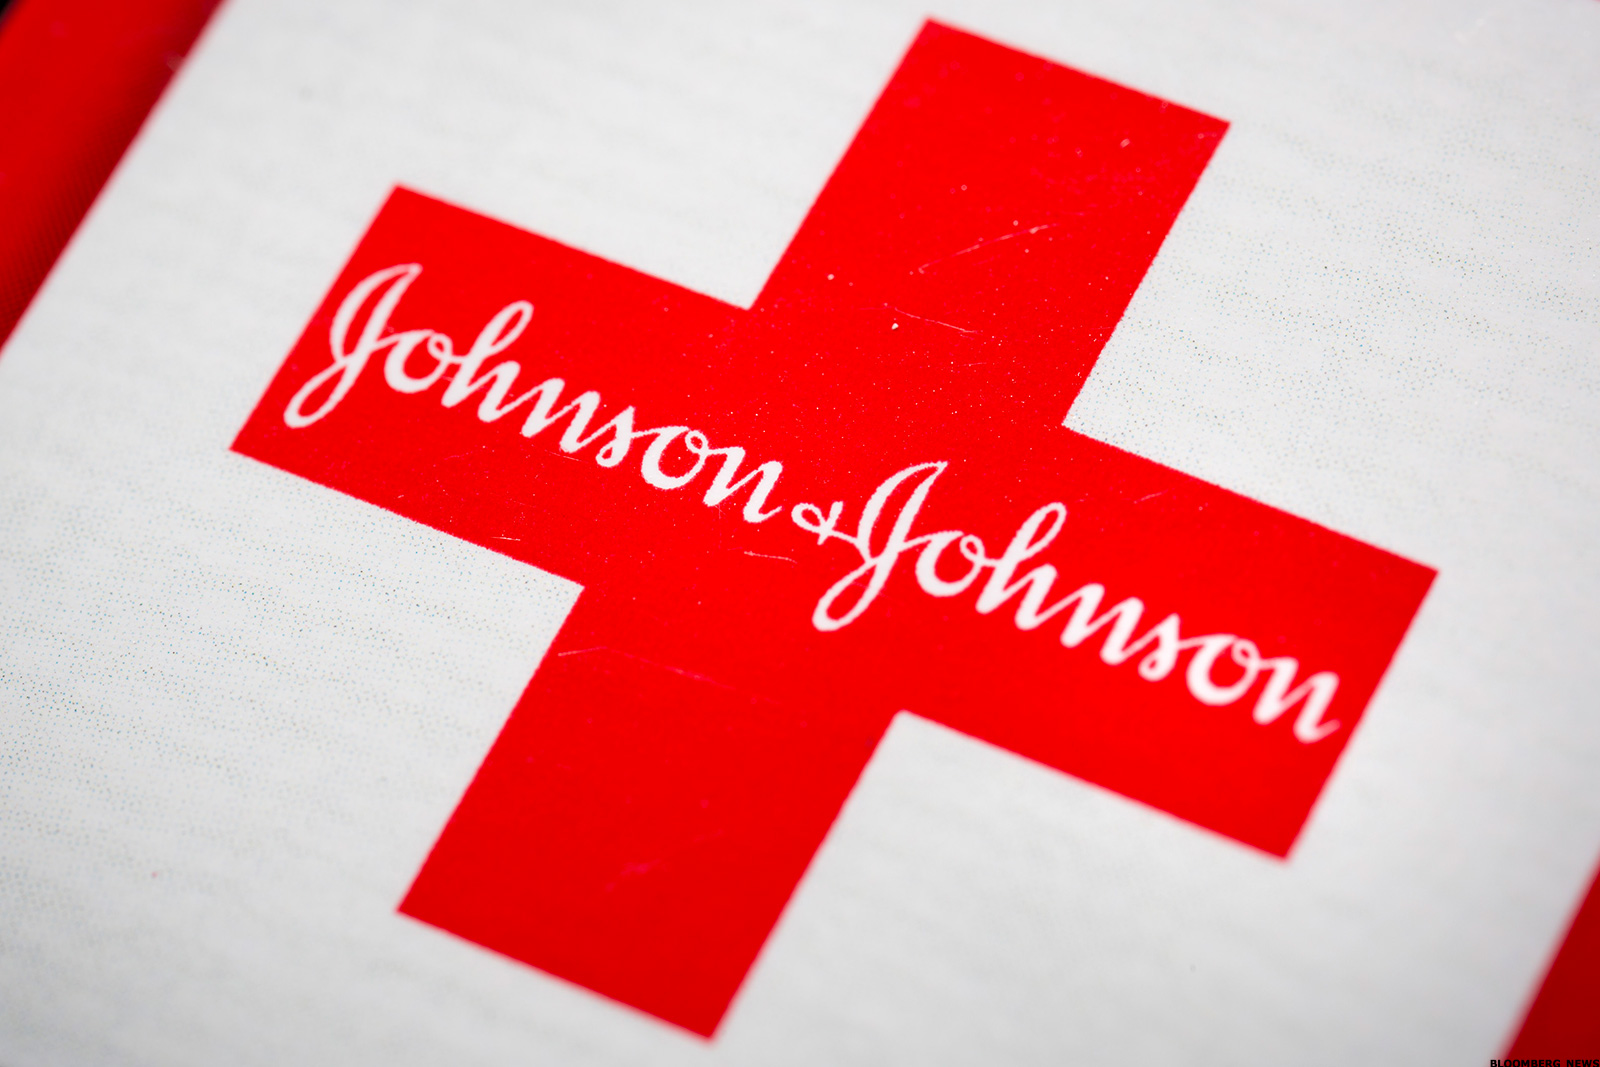 analysis on johnson johnson Johnson & johnson swot analysis, segmentation, targeting & positioning (stp) are covered on this page analysis of johnson & johnson also includes its usp, tagline.